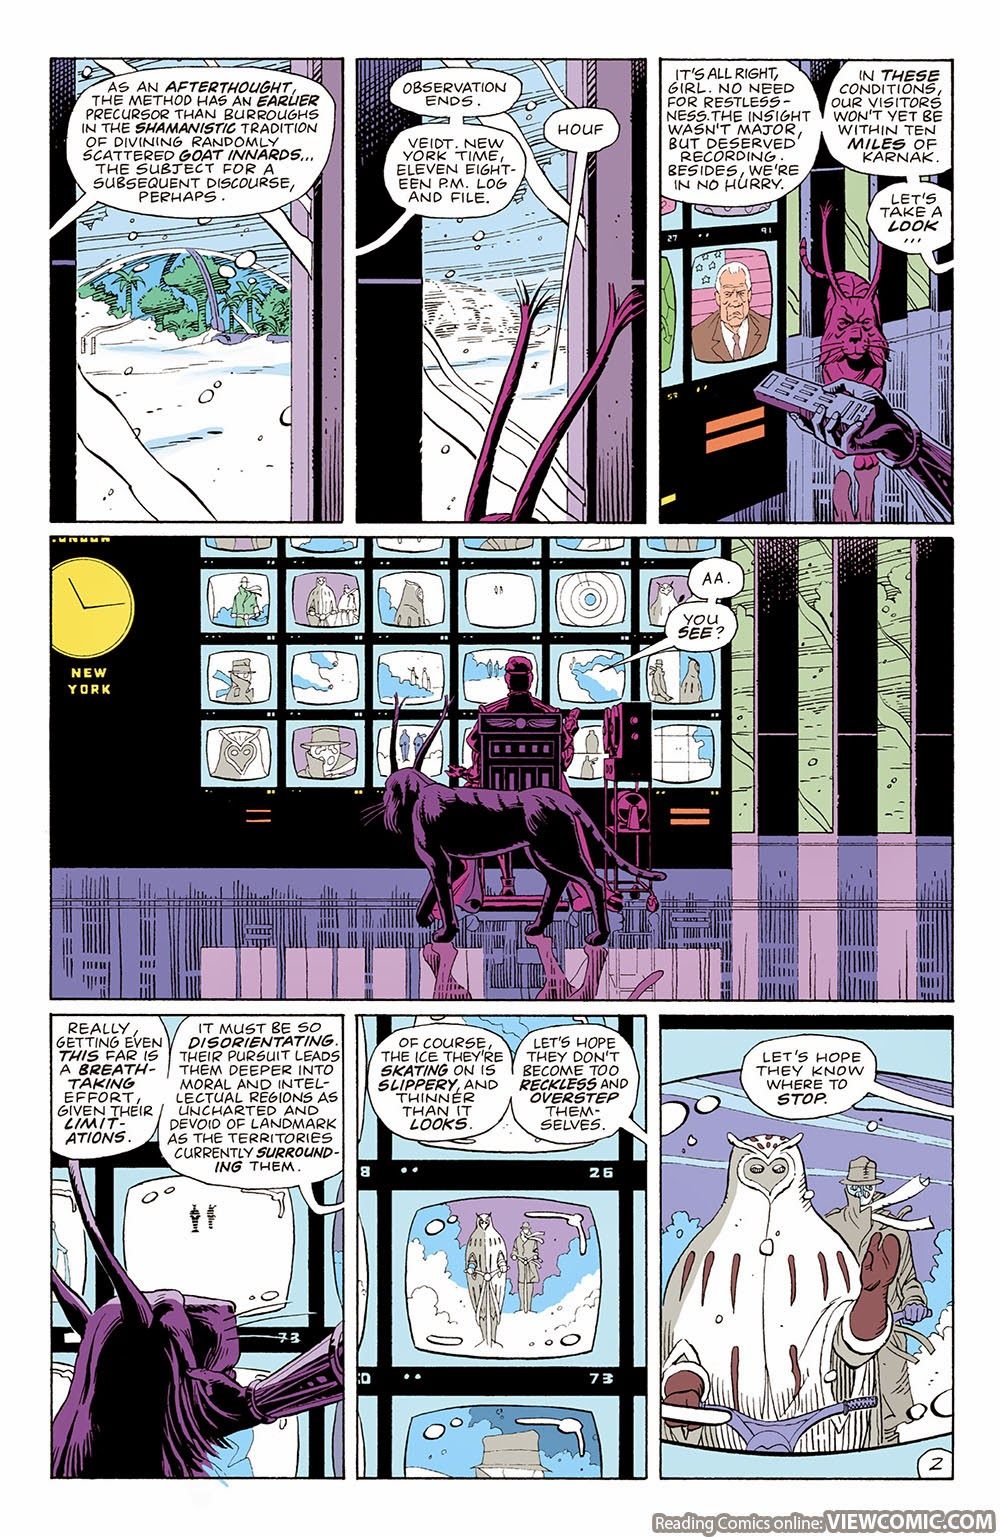 watchmen and chapter The second part of the thesis (chapter 5) is an analysis of the watchmen comic  book from the perspective of the myth of redemptive violence.